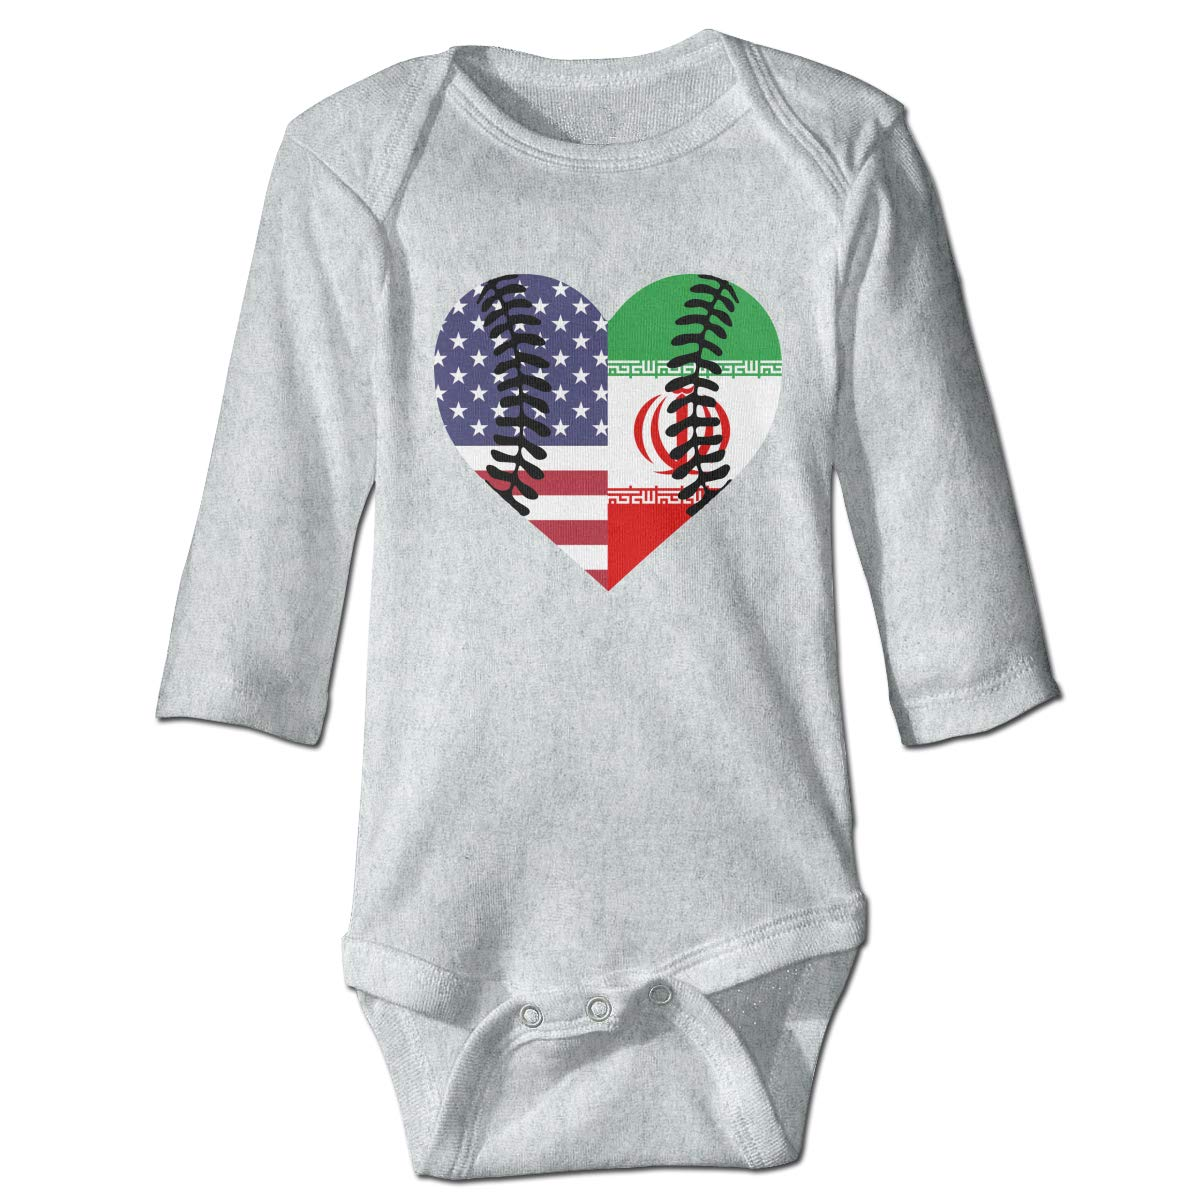 A14UBP Infant Baby Girls Long Sleeve Jumpsuit Romper Iran USA Flag Half Baseball Unisex Button Playsuit Outfit Clothes